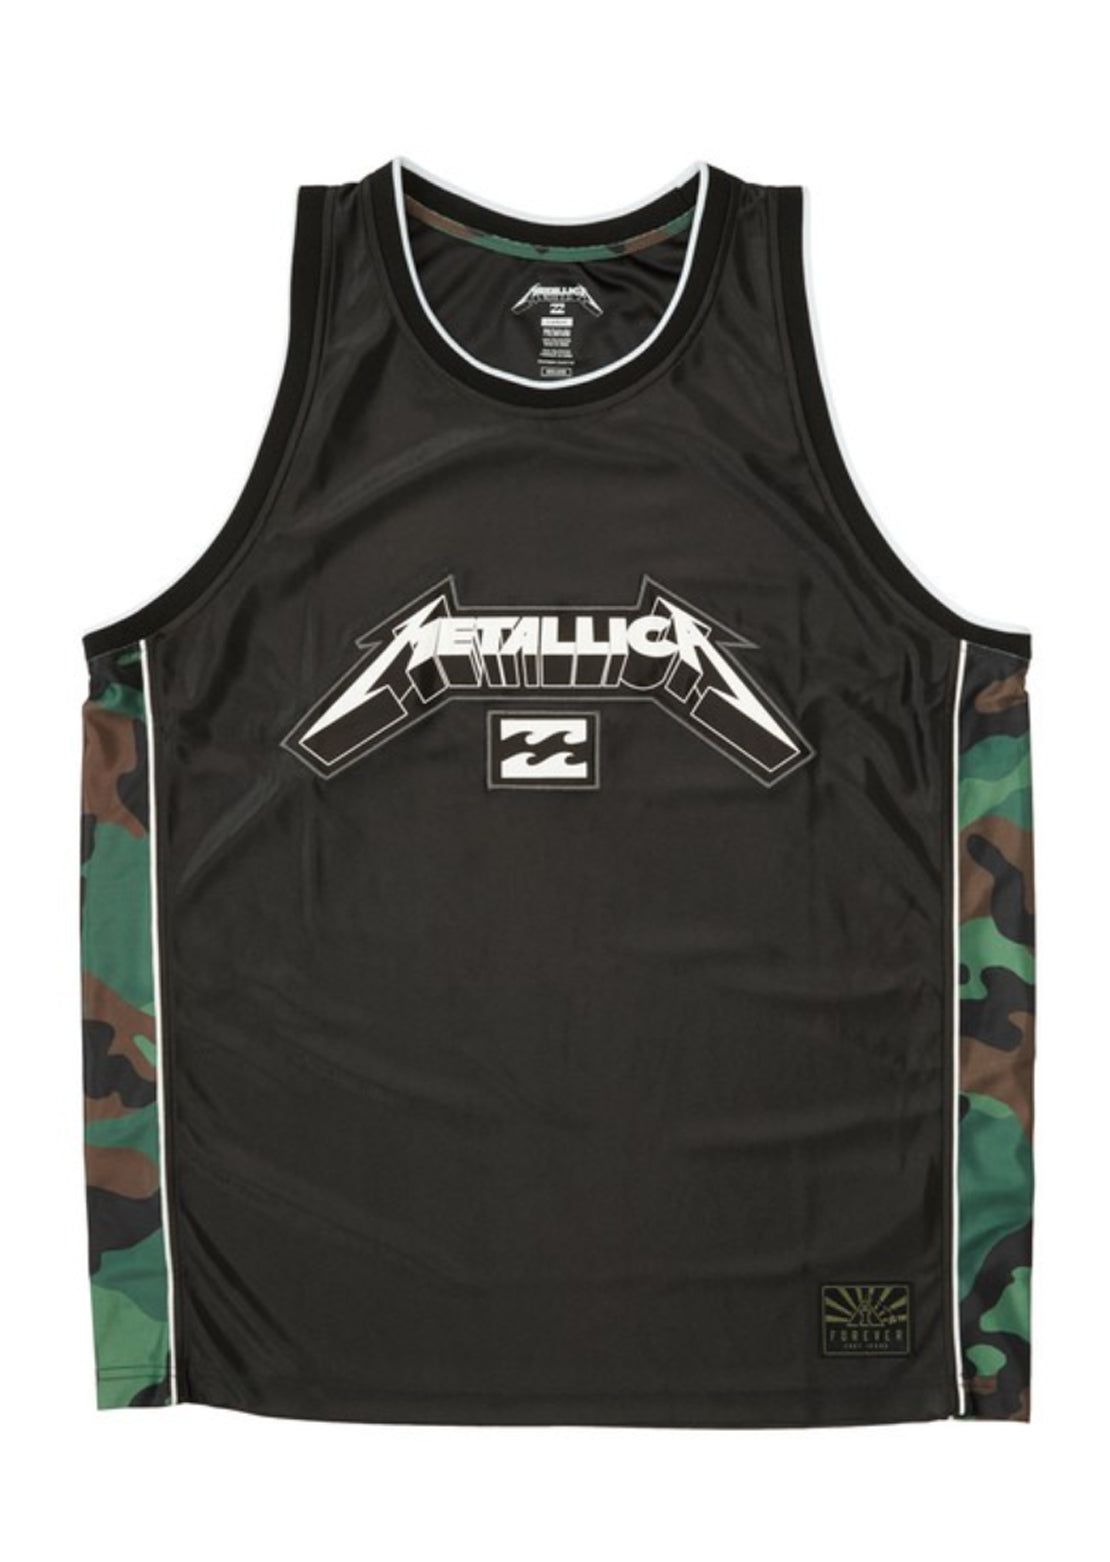 Billabong X Metallica Men's Ai Metallica Tank Top Black